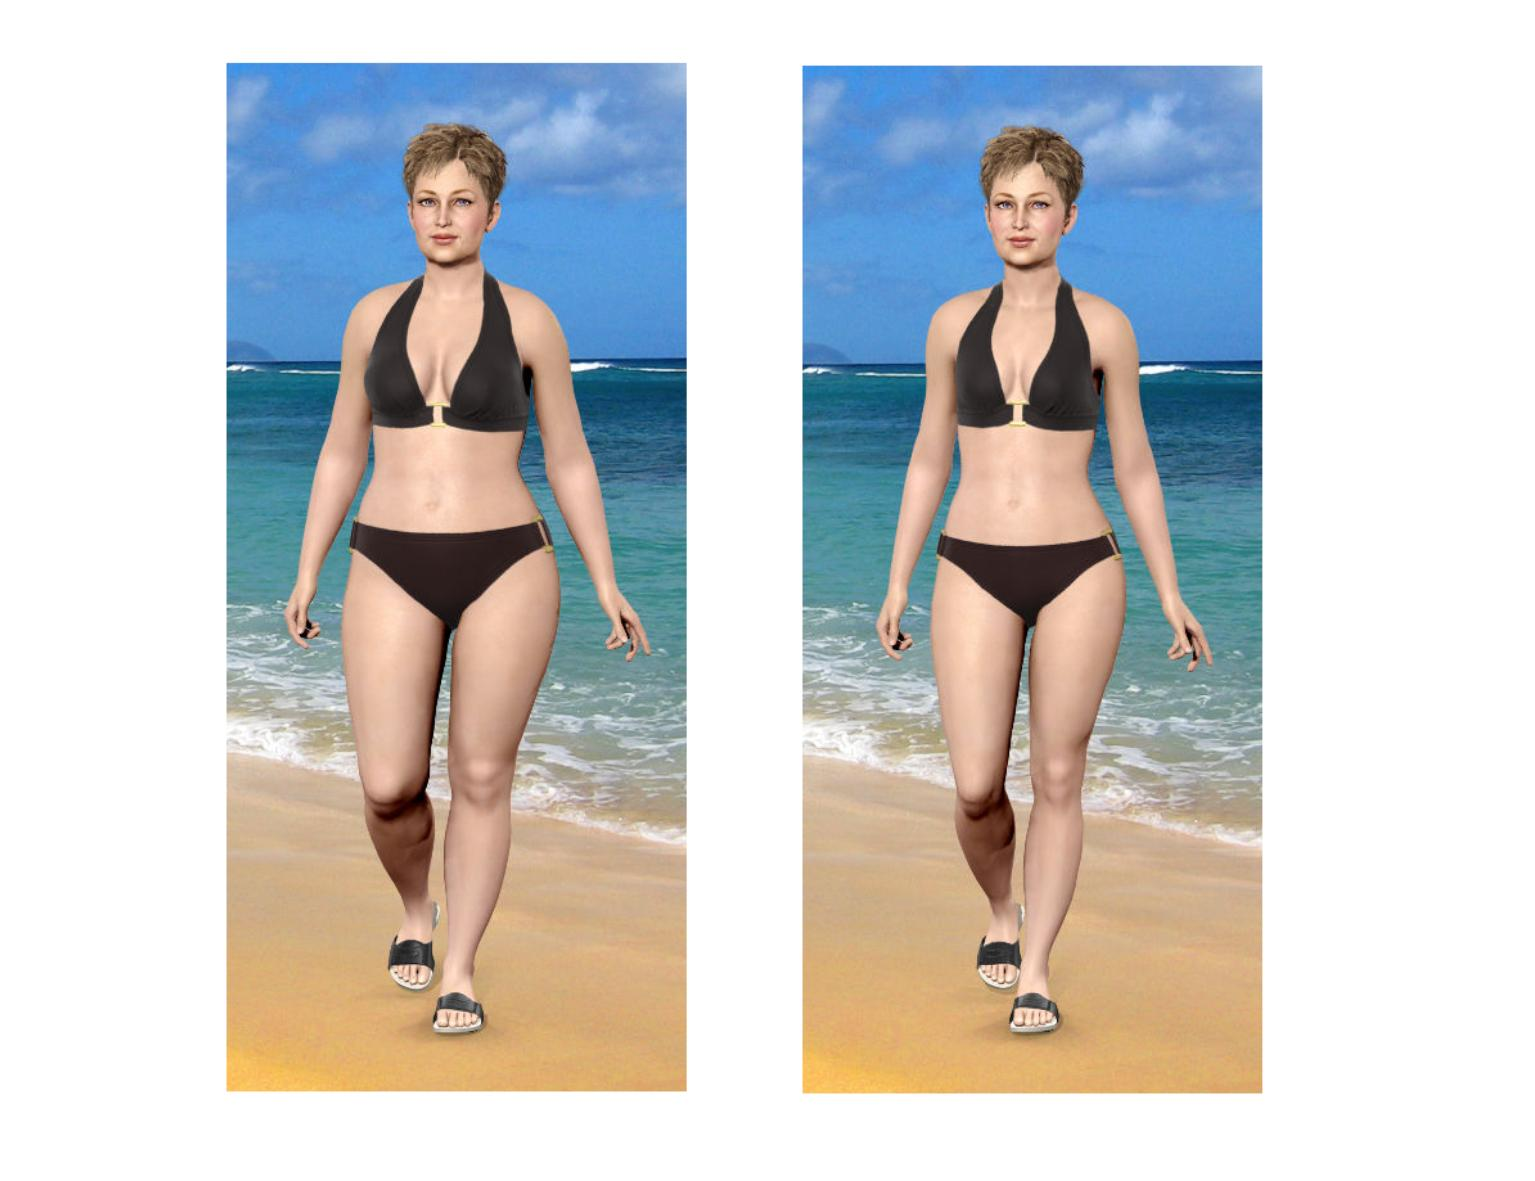 Progress lets you visualize your weight loss by taking perfectly Free weight loss photo simulator